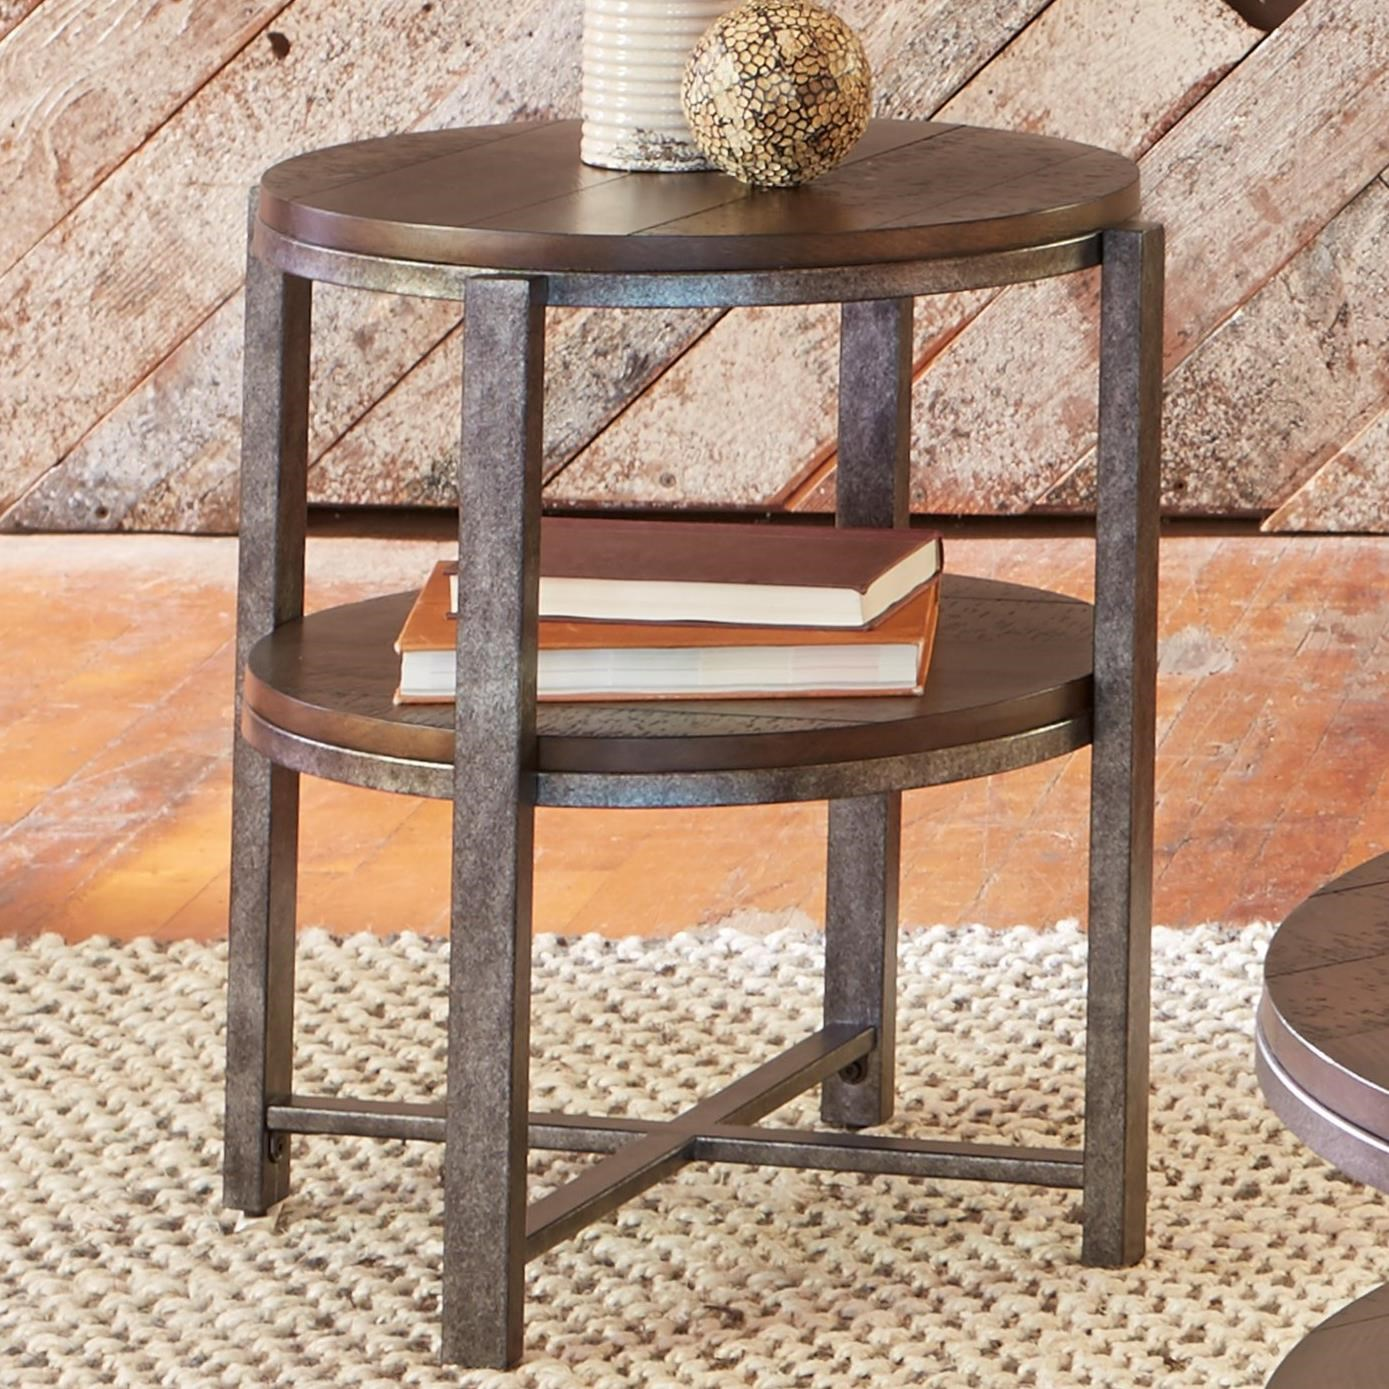 Liberty Furniture Breckinridge 348 Ot1020 Round End Table With Shelf Great American Home Store